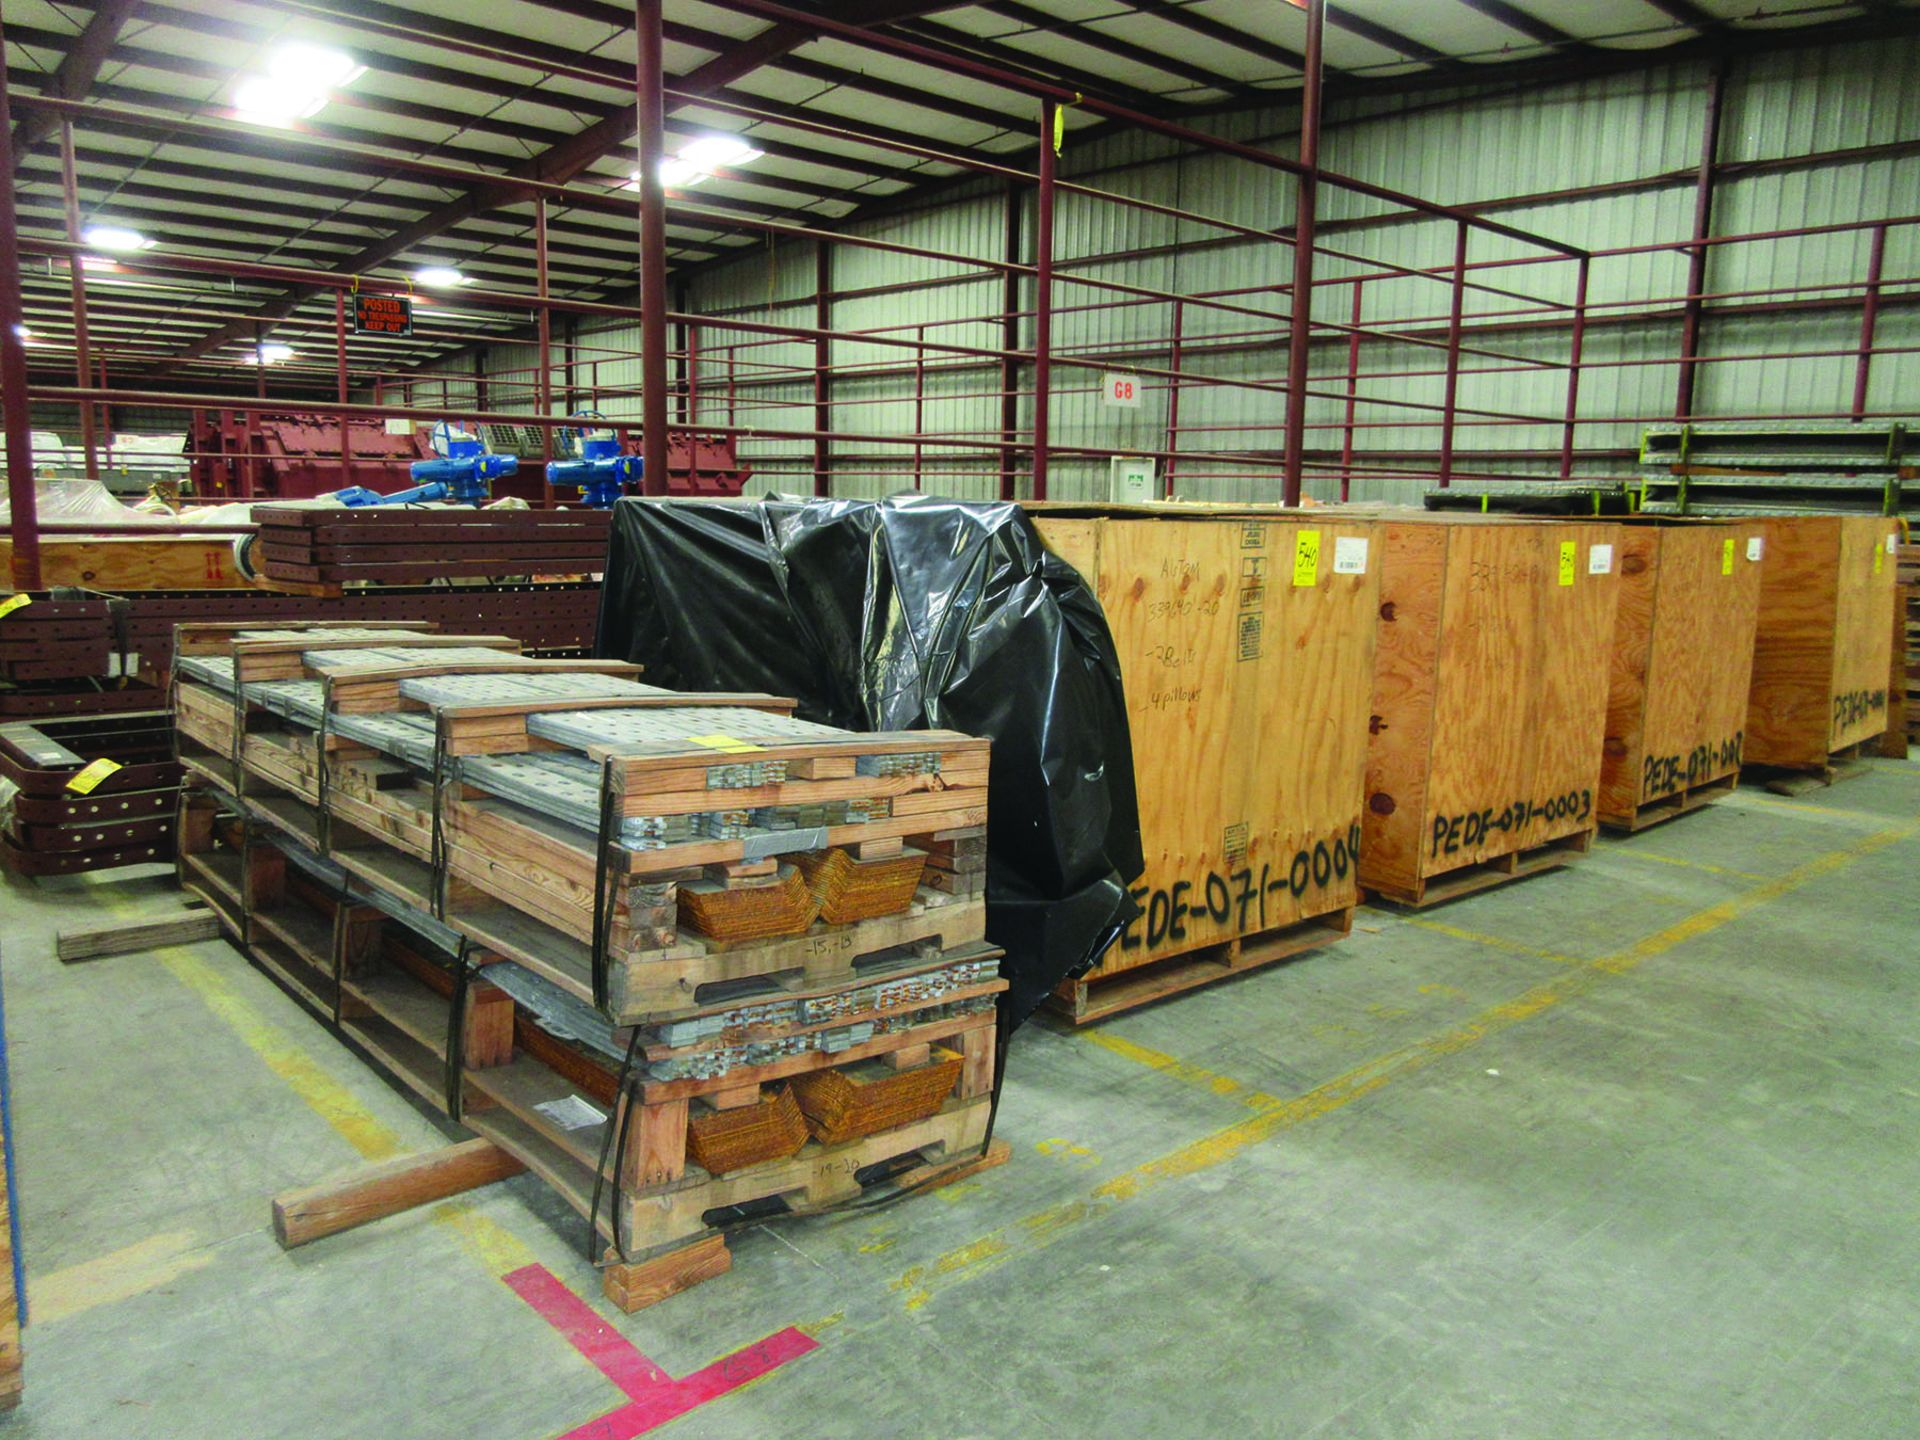 PALLET OF GAS DUCT TO AIR HEATER PRE FAB STEEL, OTHER FAB STEEL, V-BELTS, BELLOWS, GRID G8